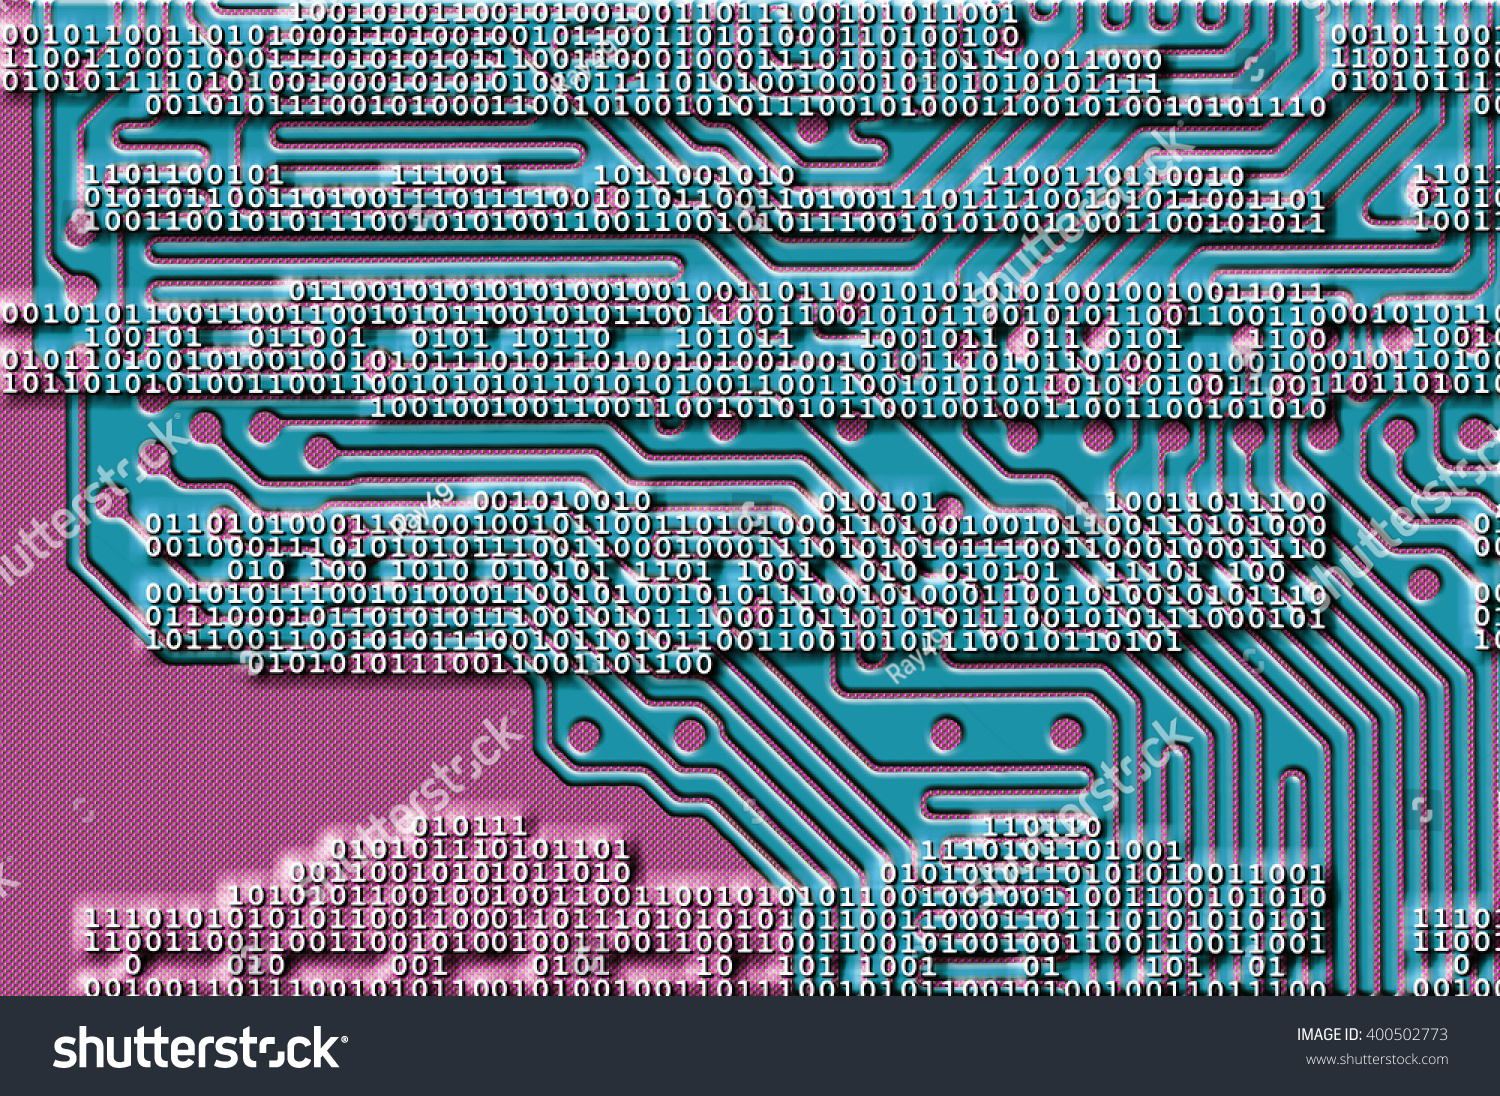 Abstract Computer Data Code Background Circuit Stock Illustration Wireframe Globe On Board And Binary With Backdrop In Blue Pink